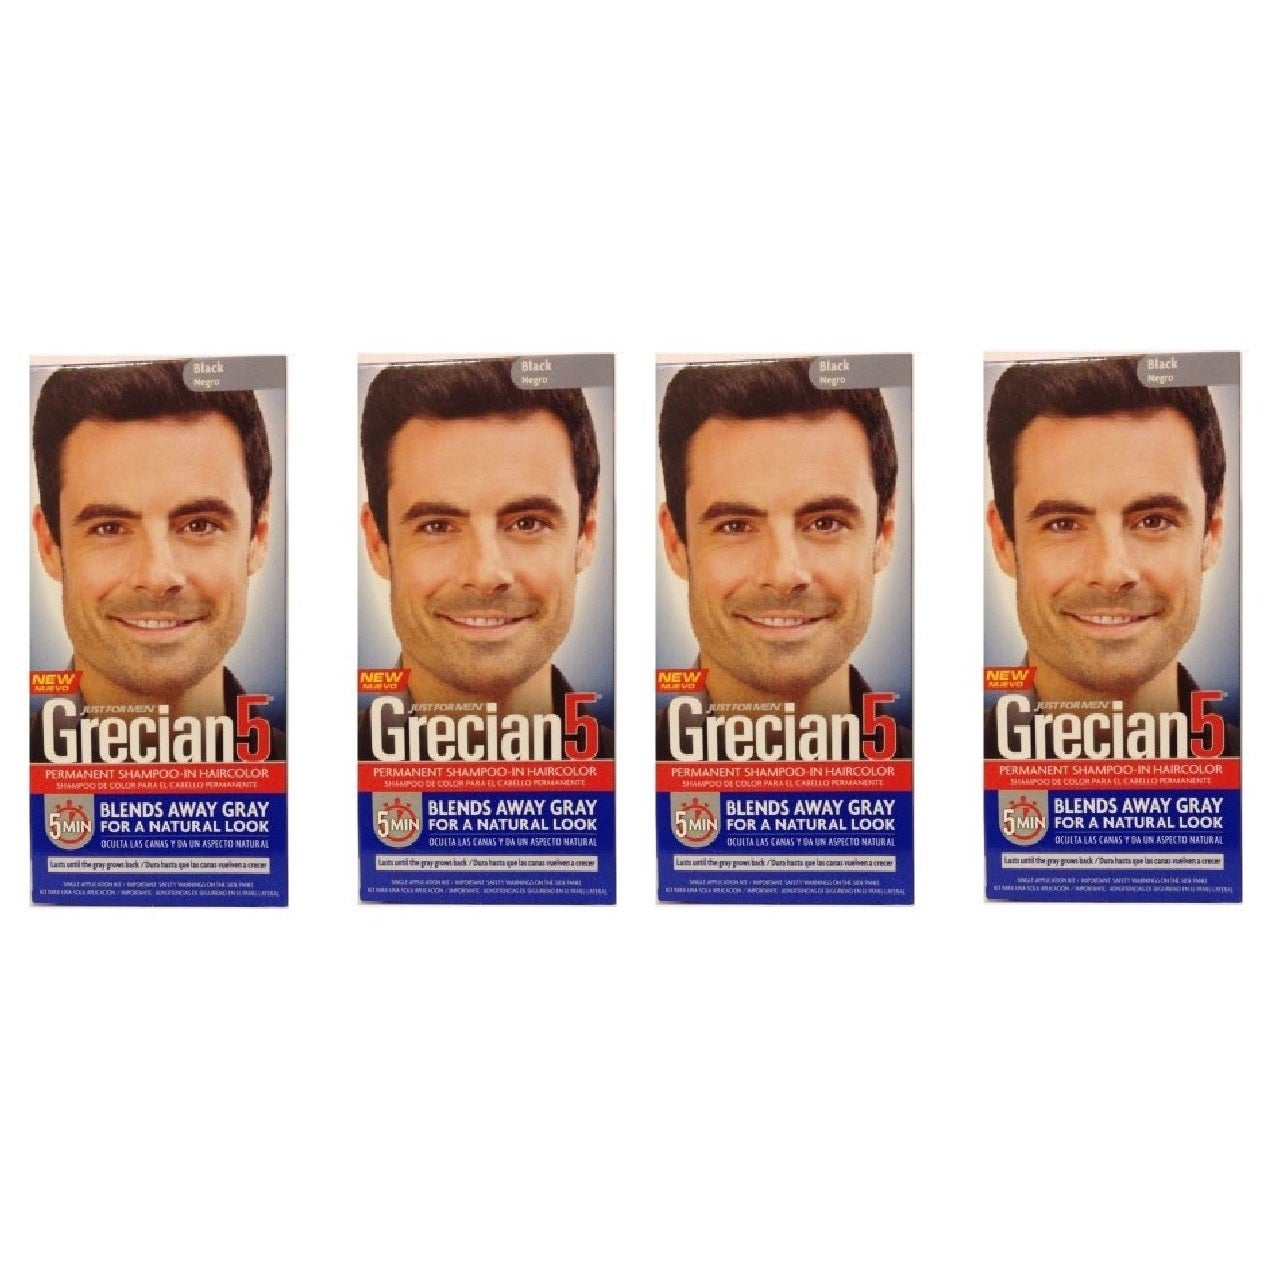 Shop Just Mens Grecian 5 Permanent Shampoo In Haircolor Black